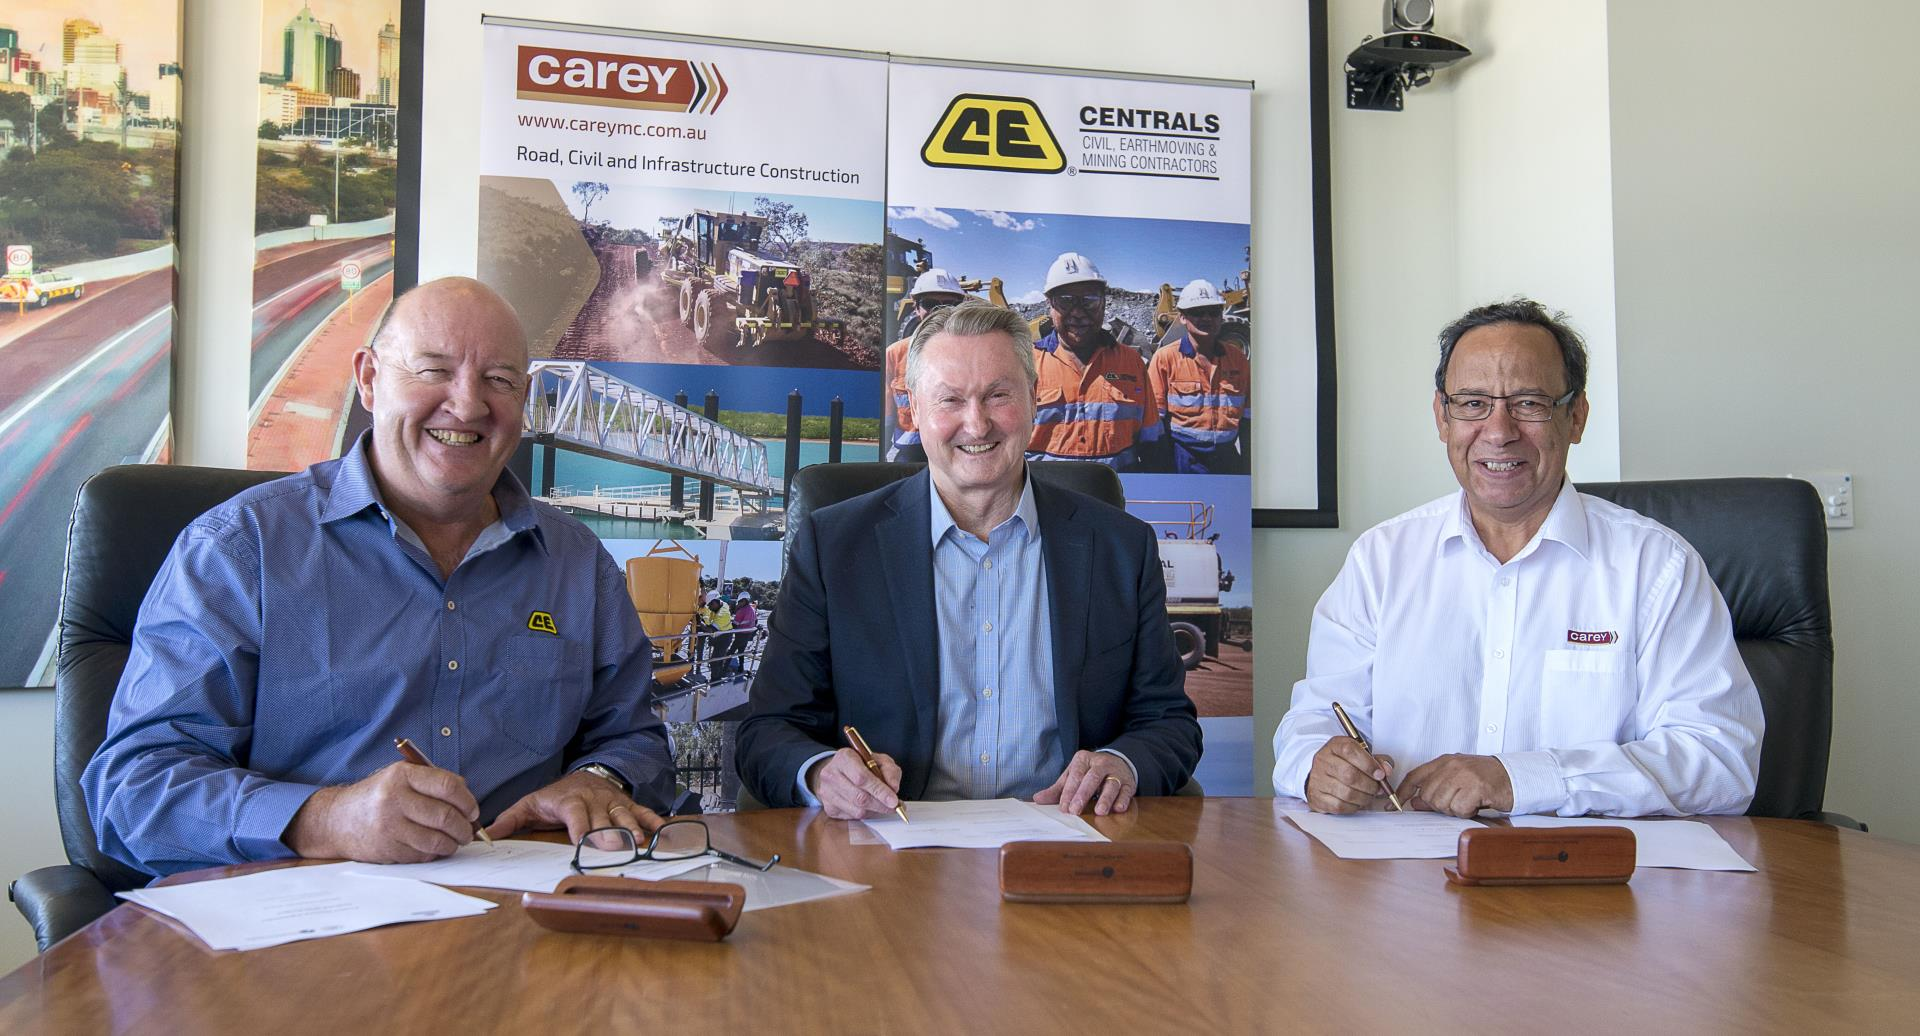 Craig Patterson MD Centrals, Daniel Tucker MD Carey Mining and Peter Woronzow MD Main Roads